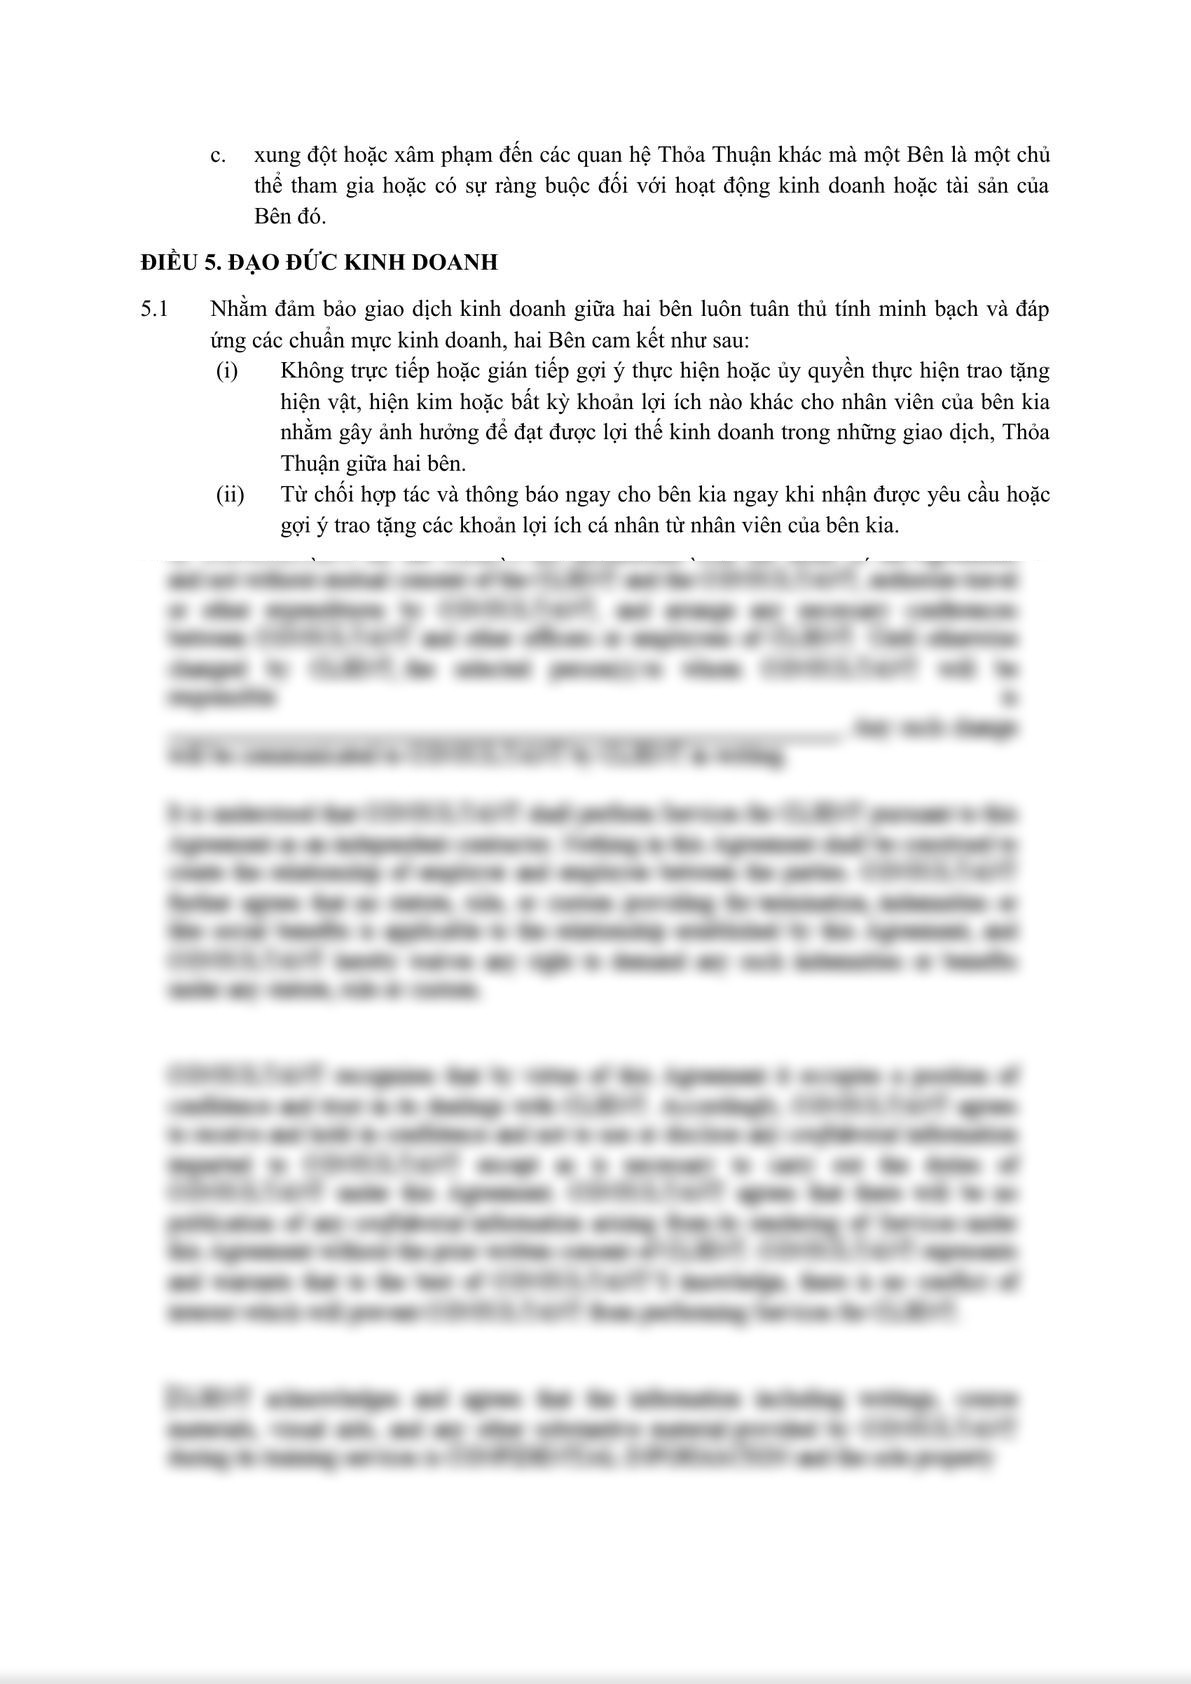 Master project collaboration agreement-5